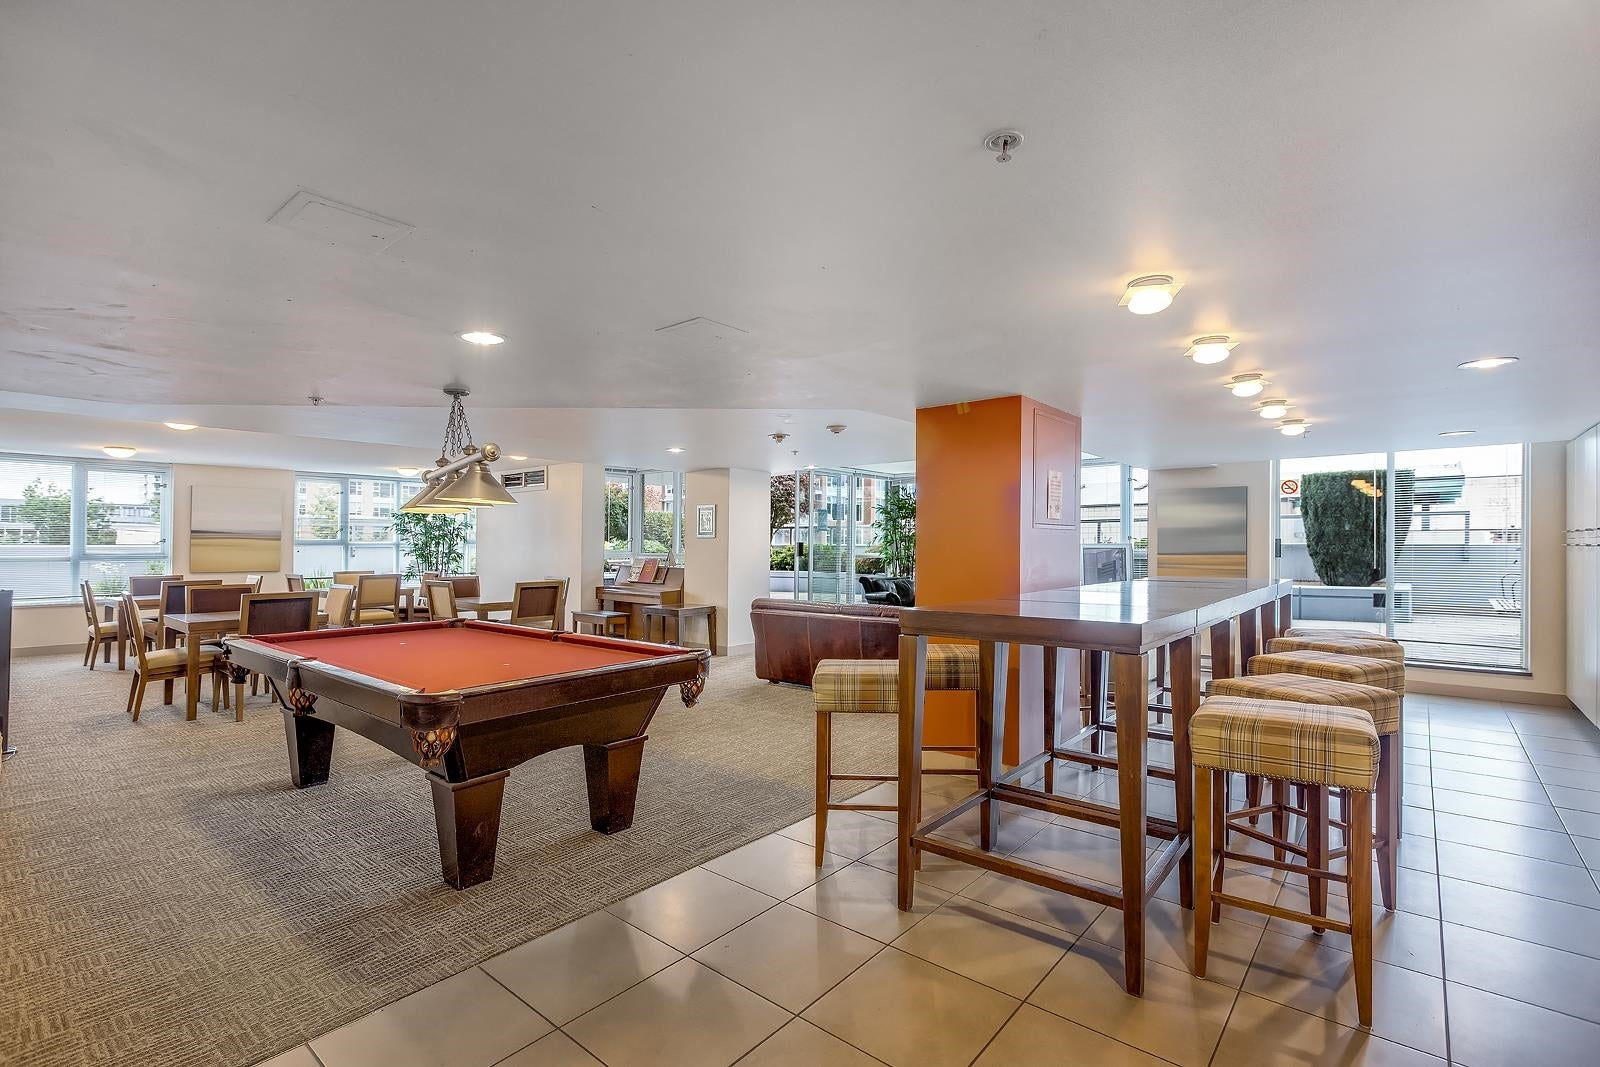 1601 121 W 16TH STREET - Central Lonsdale Apartment/Condo for sale, 2 Bedrooms (R2617103) - #34